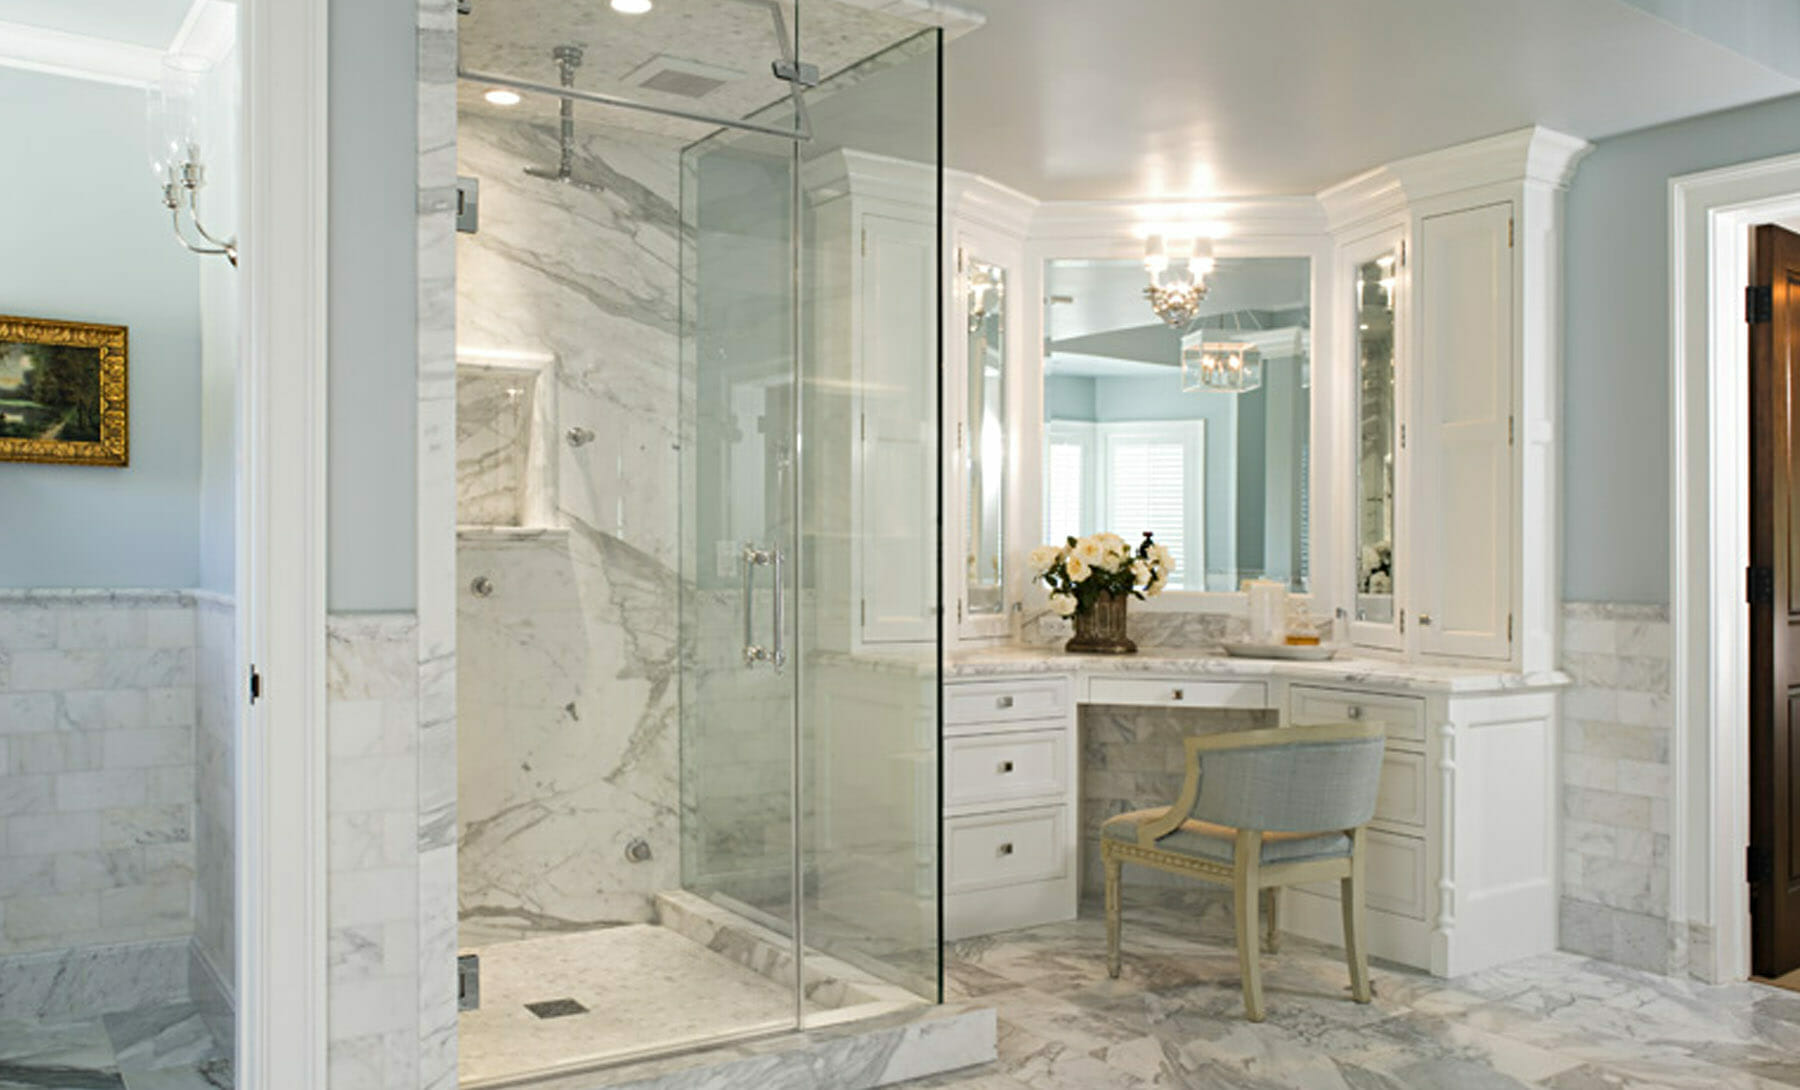 historic-style bathroom in Charlottesville, with classic-style molding and marbled floors and shower